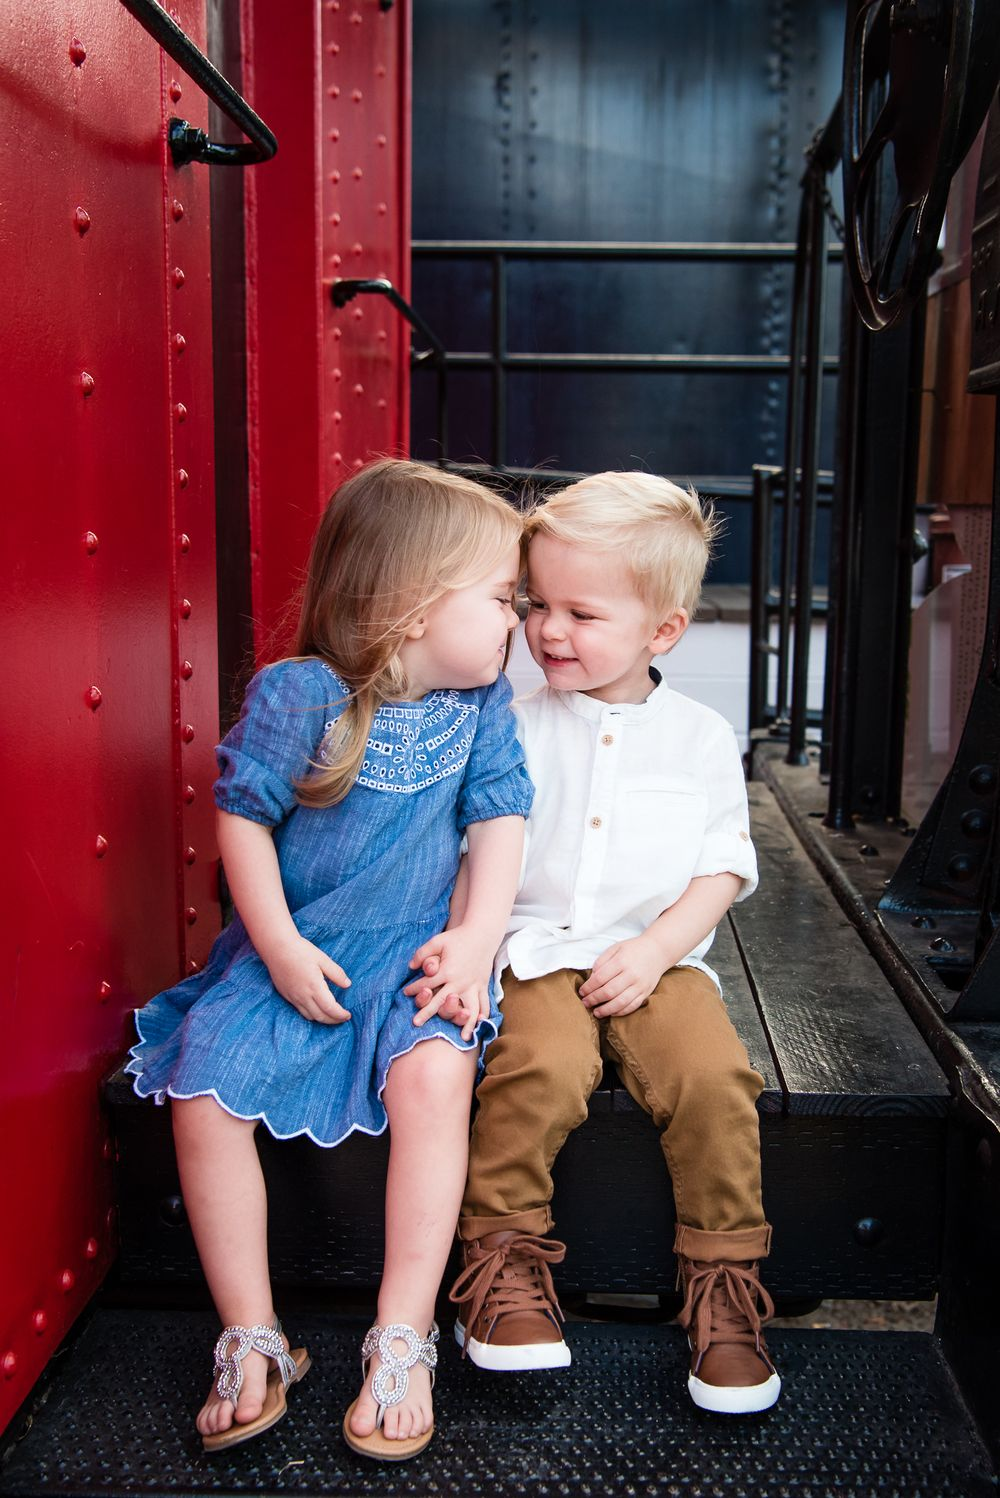 Image of a little brother and sister on a train car in San Juan Capistrano, CA